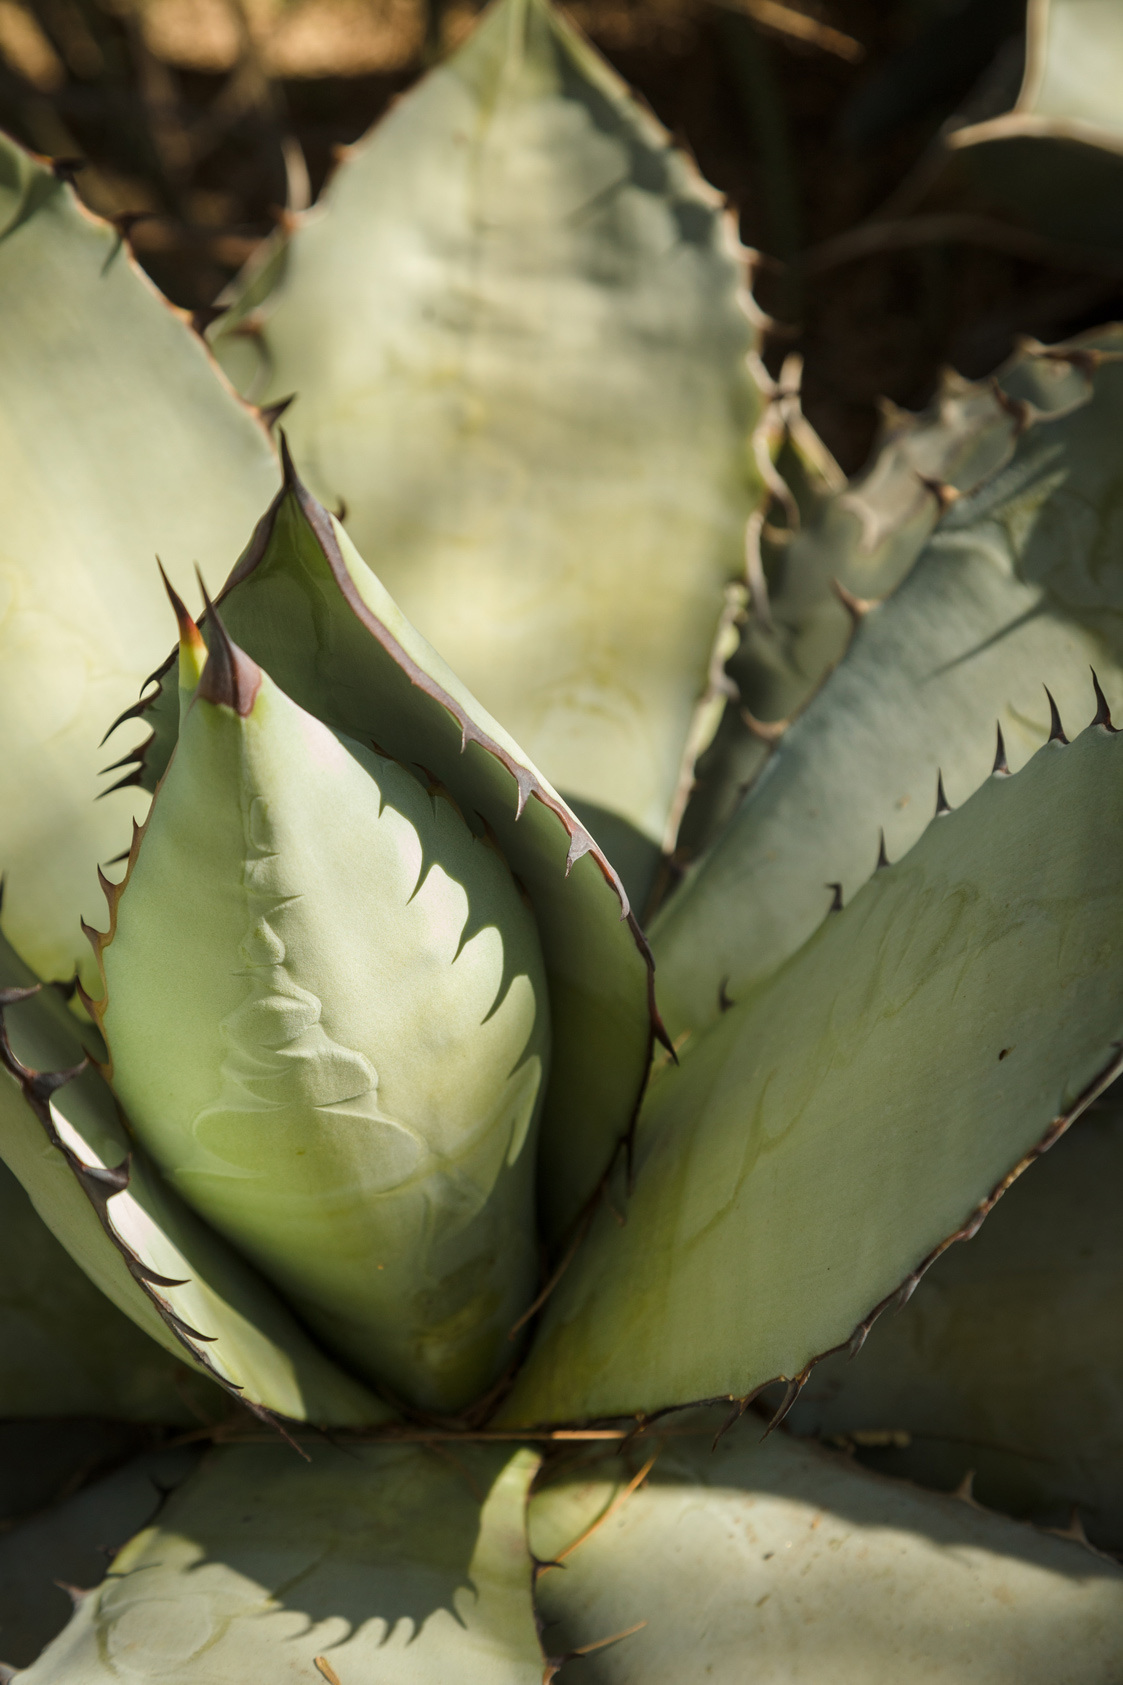 A close-up of the sharp and unique teeth and spines of the Gentry Agave.